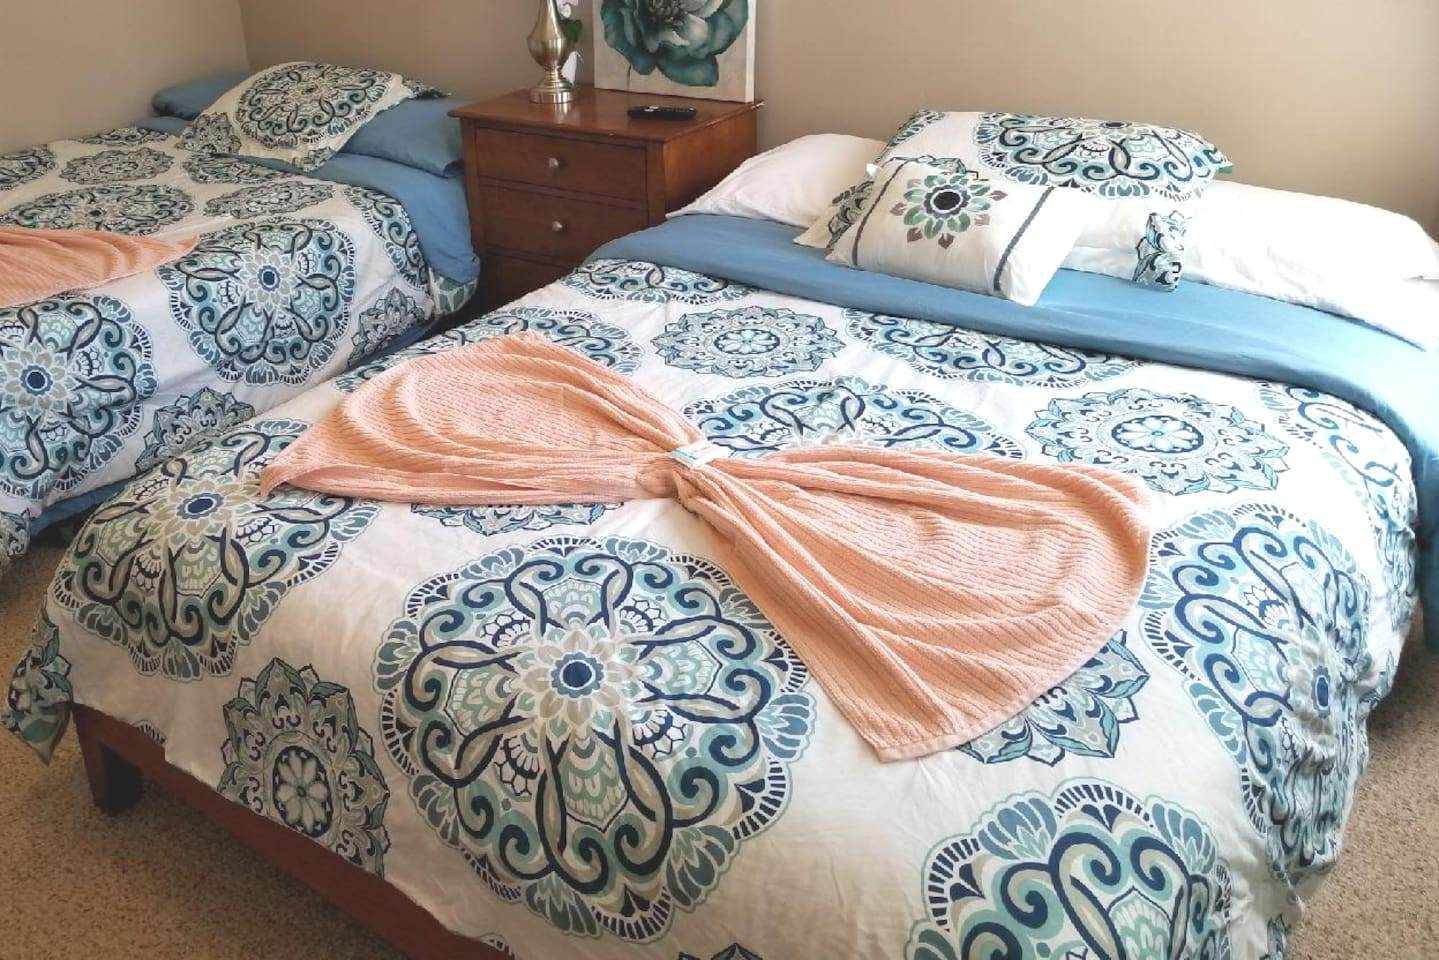 Cozy Room has 2 Queen beds with brand new mattresses, 4 to 5 pillows, extra pads for comfort .  .Air conditioner to keep you cool during the summer,  heated night stand with lamp.